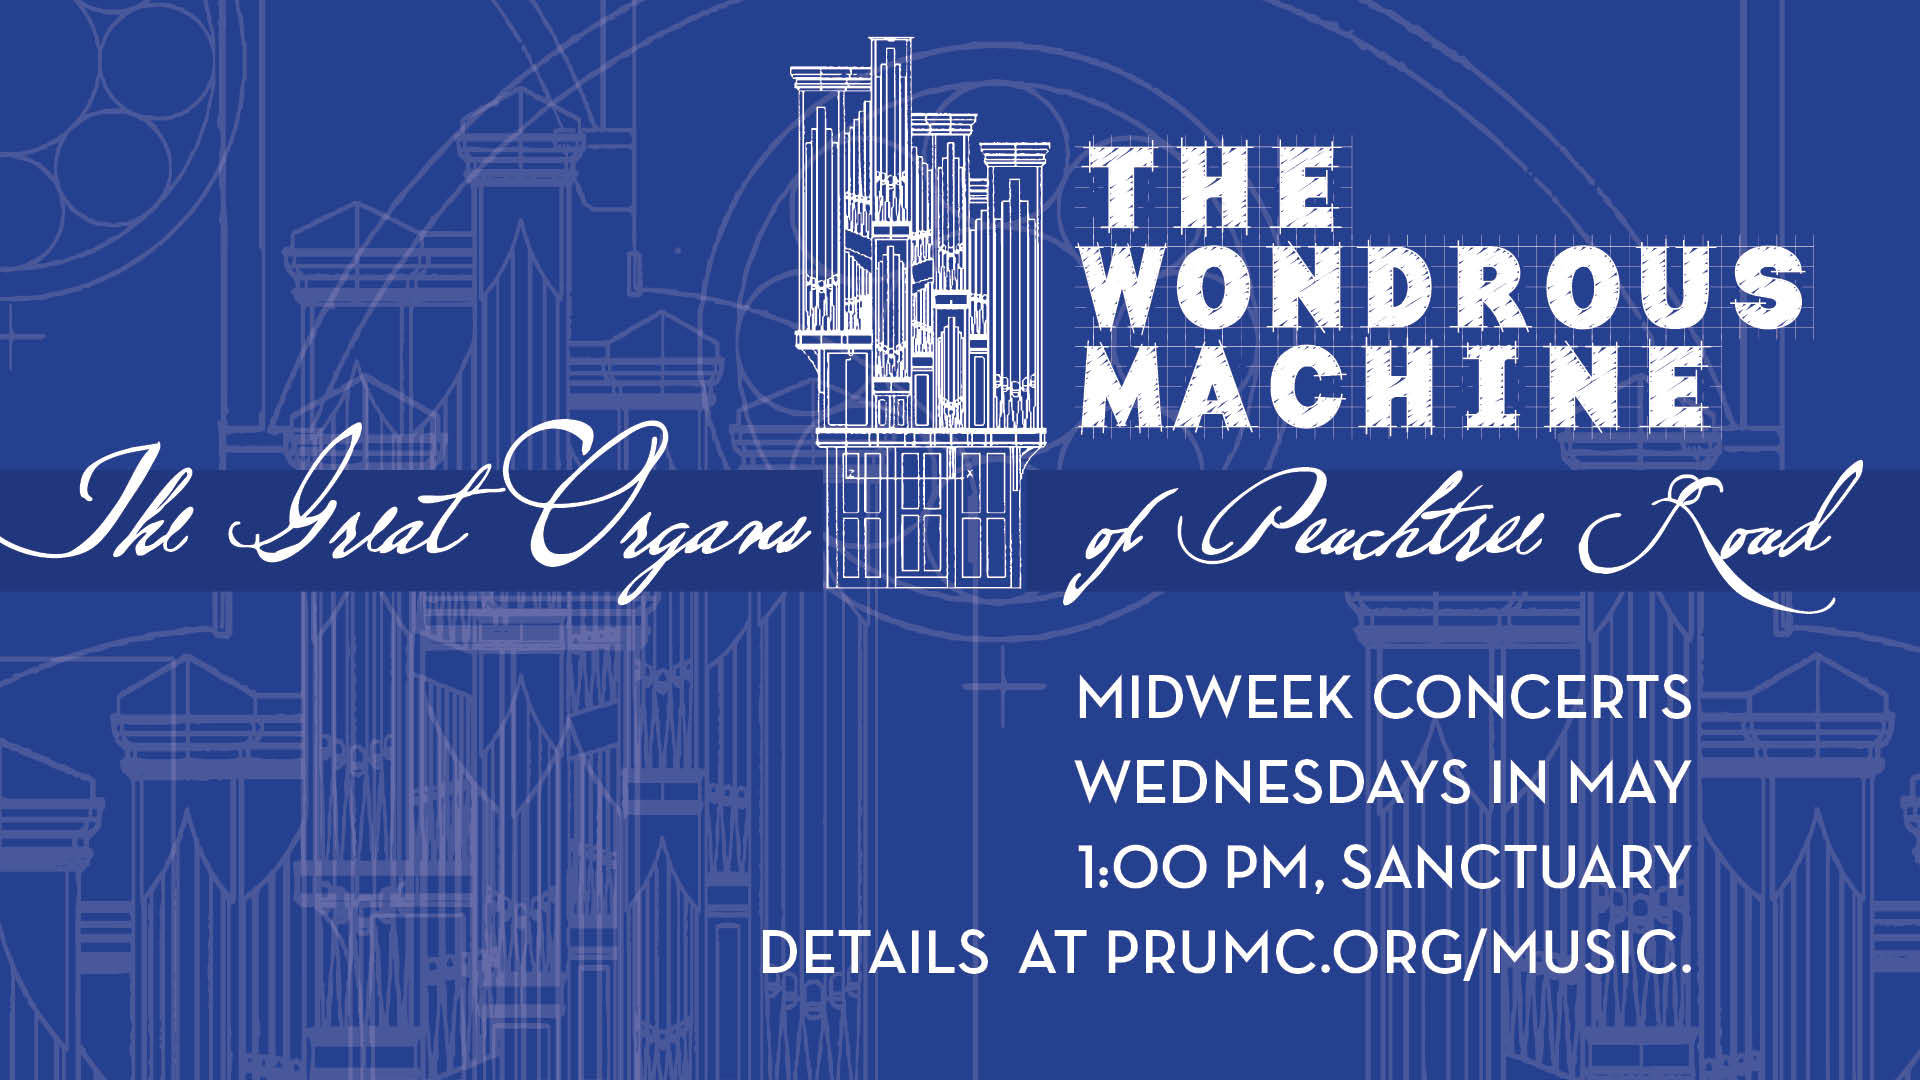 The Wondrous Machine Midday Concerts in May